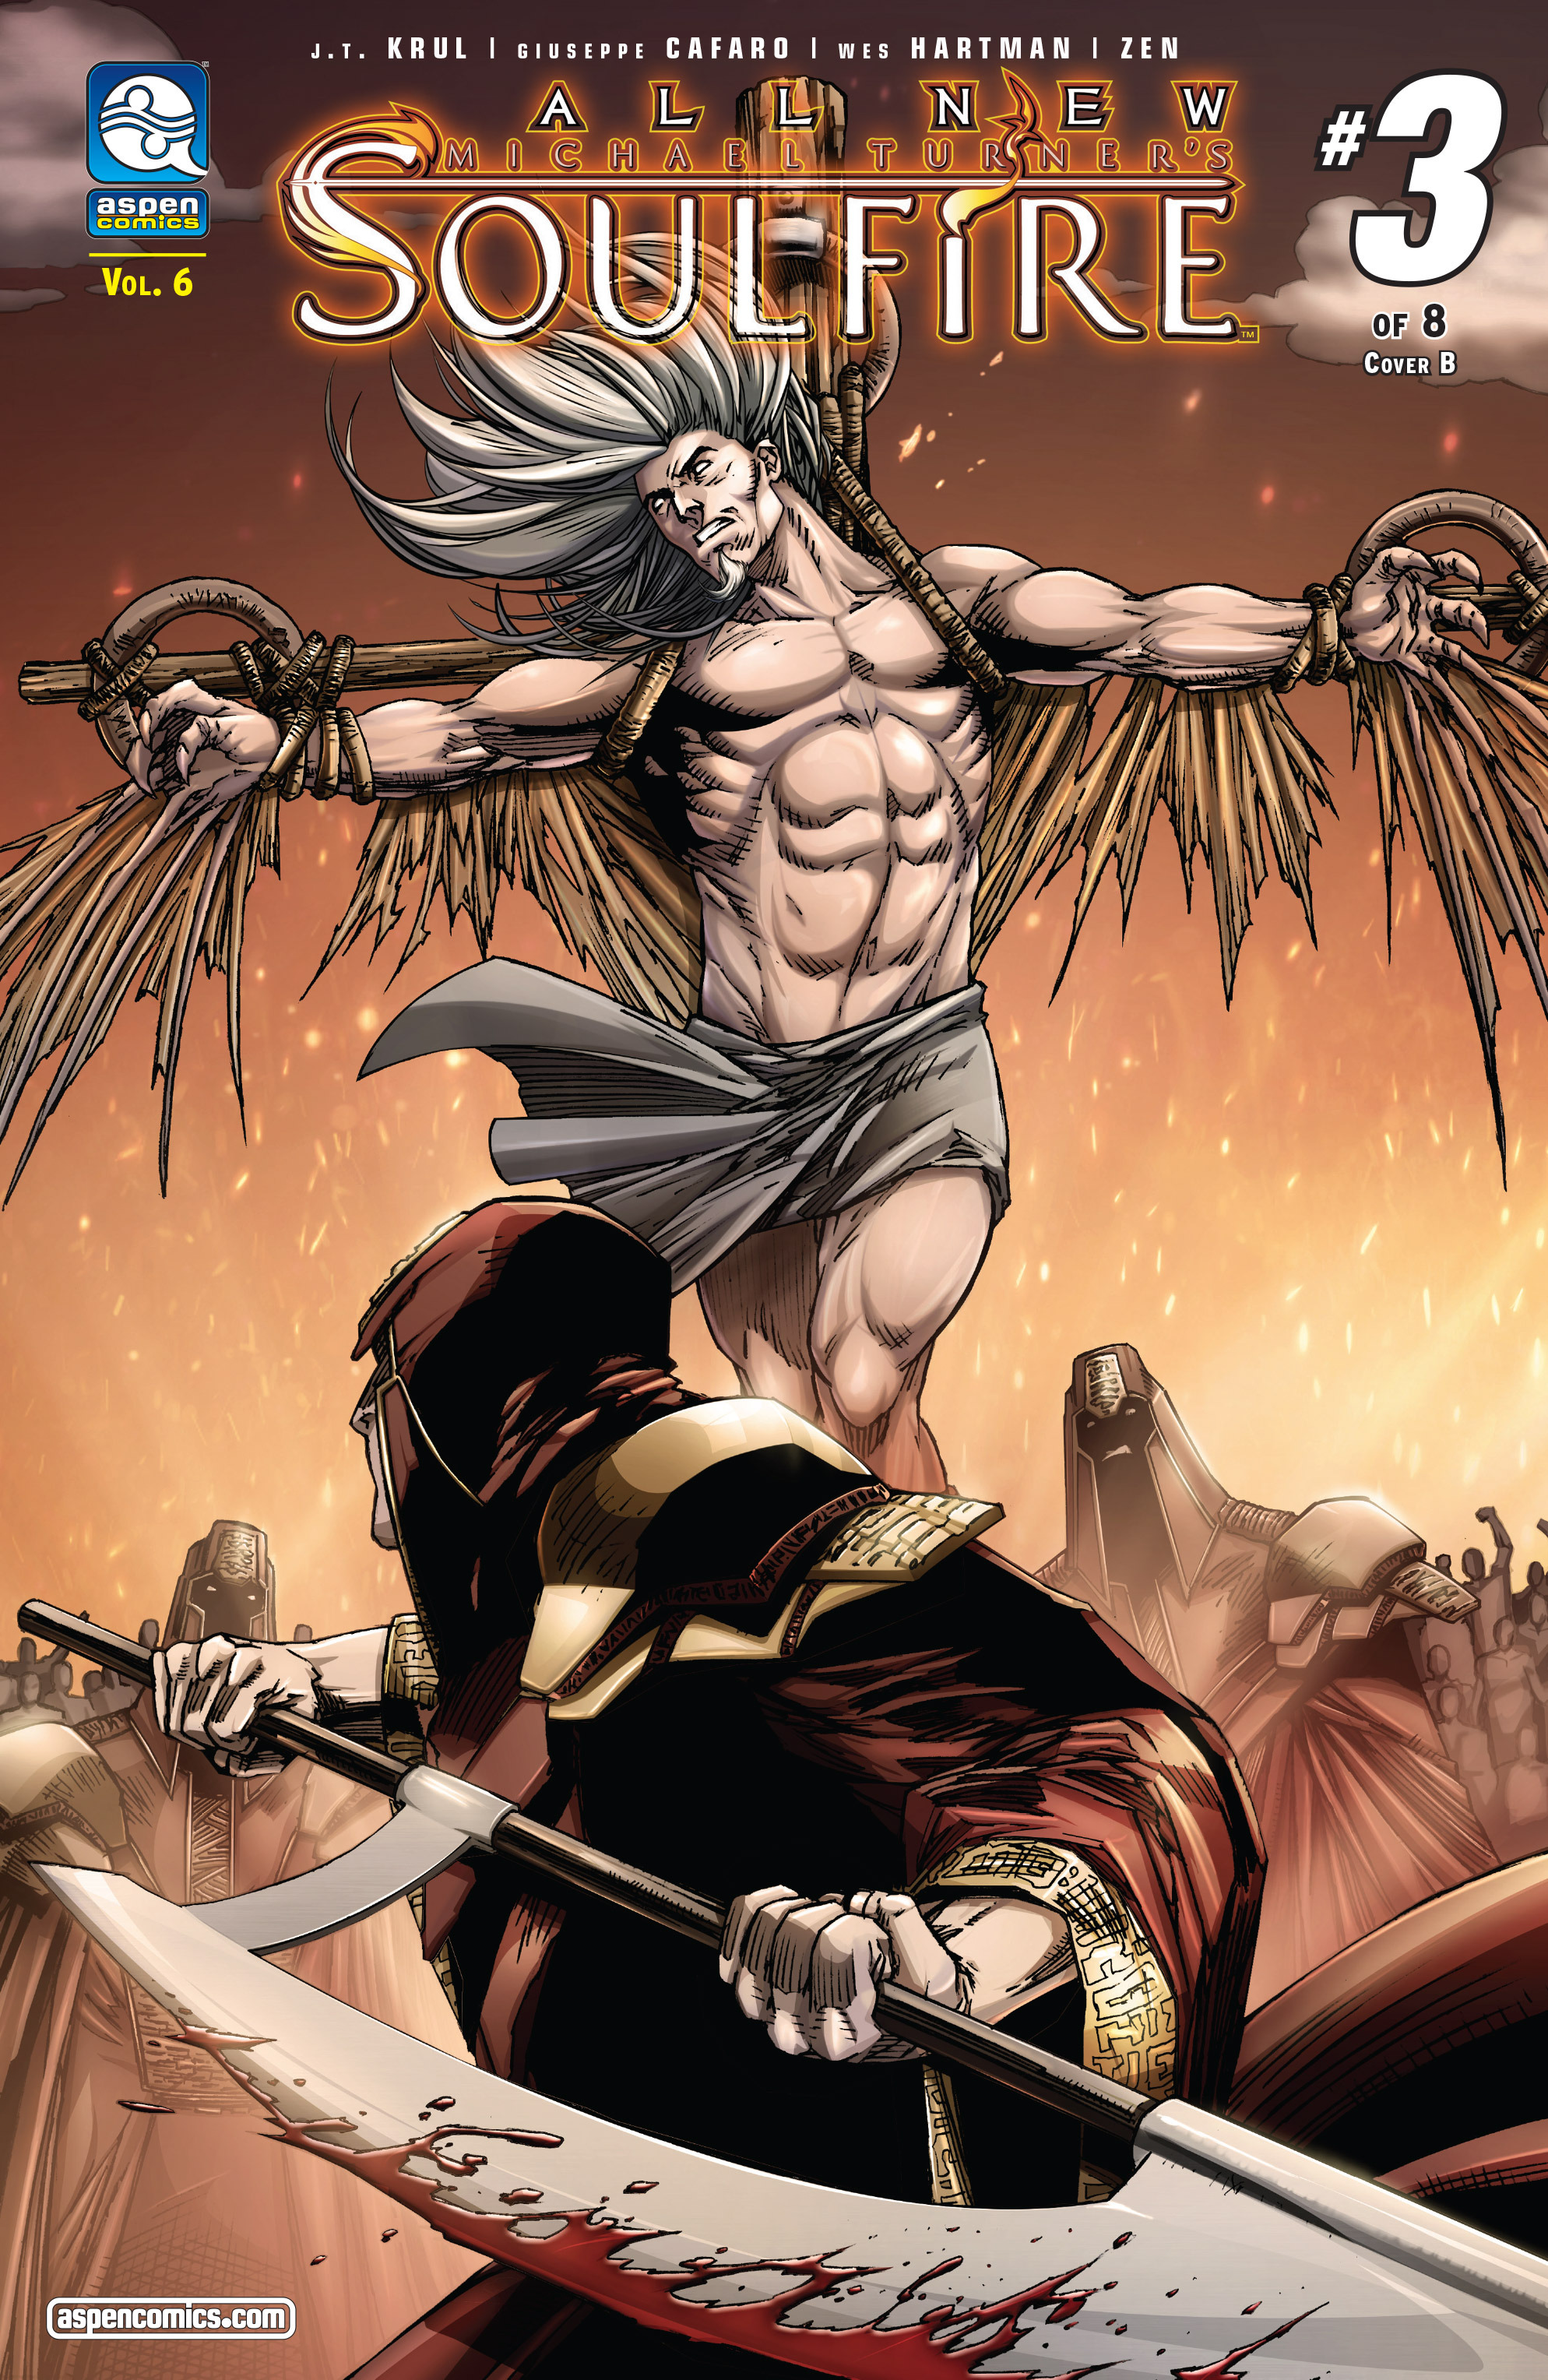 Read online All-New Soulfire Vol. 6 comic -  Issue #3 - 2